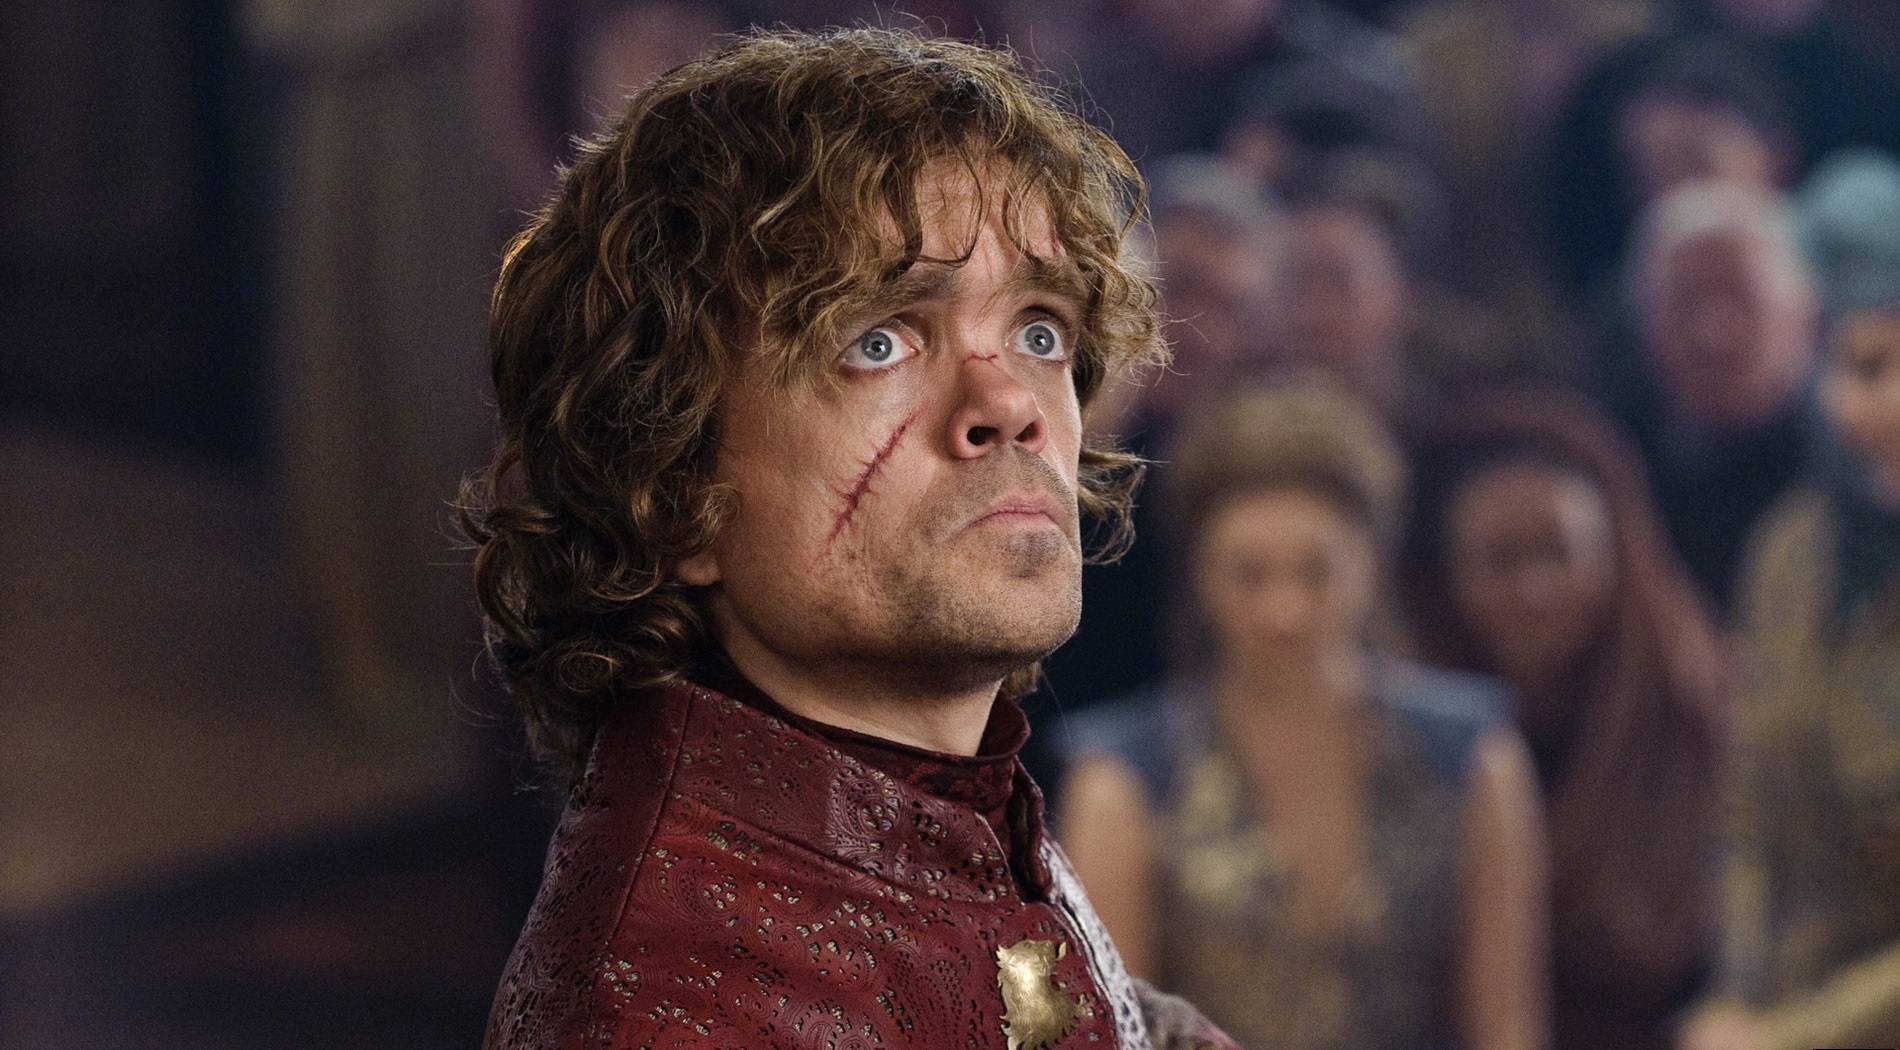 No matter who you're planning to vote for, the truth is we all REALLY want President Tyrion Lannister